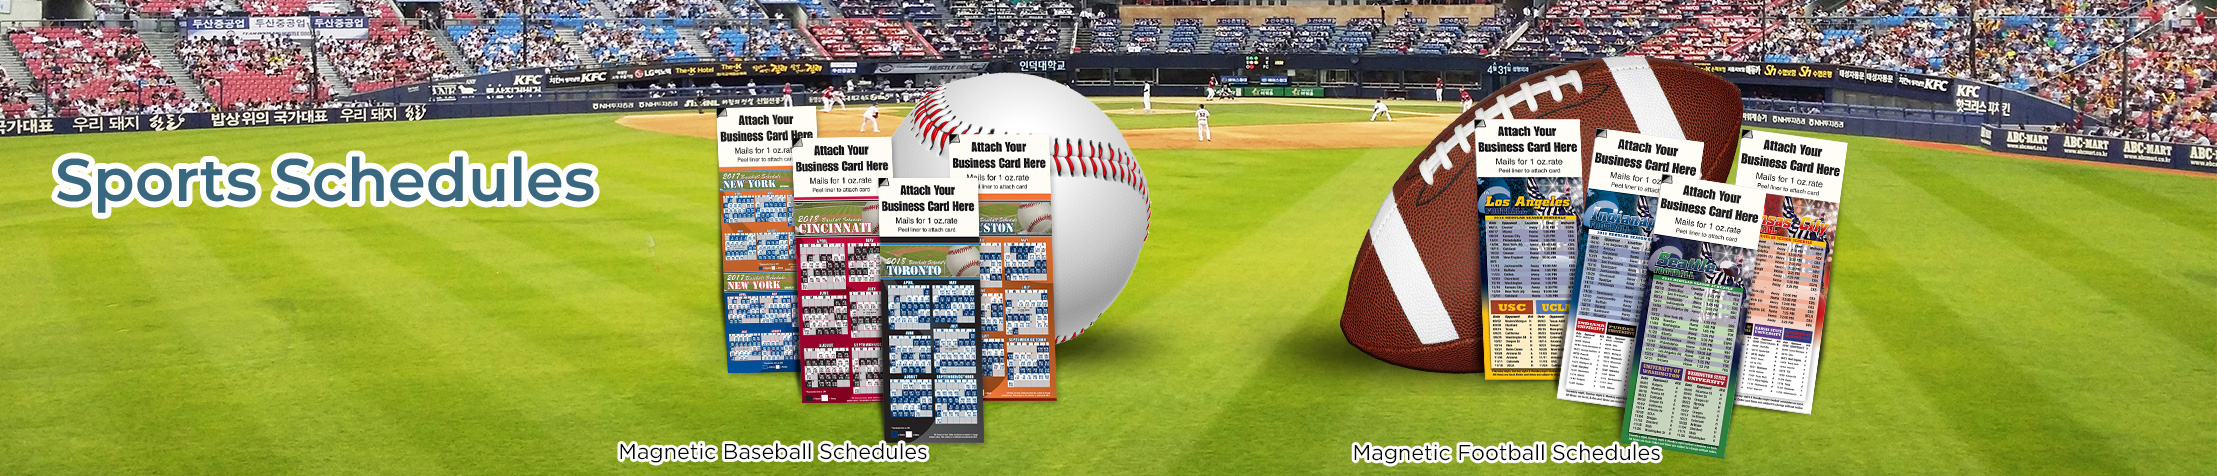 Realty Associates Real Estate Sports Schedules - Realty Associates custom sports schedule magnets | BestPrintBuy.com